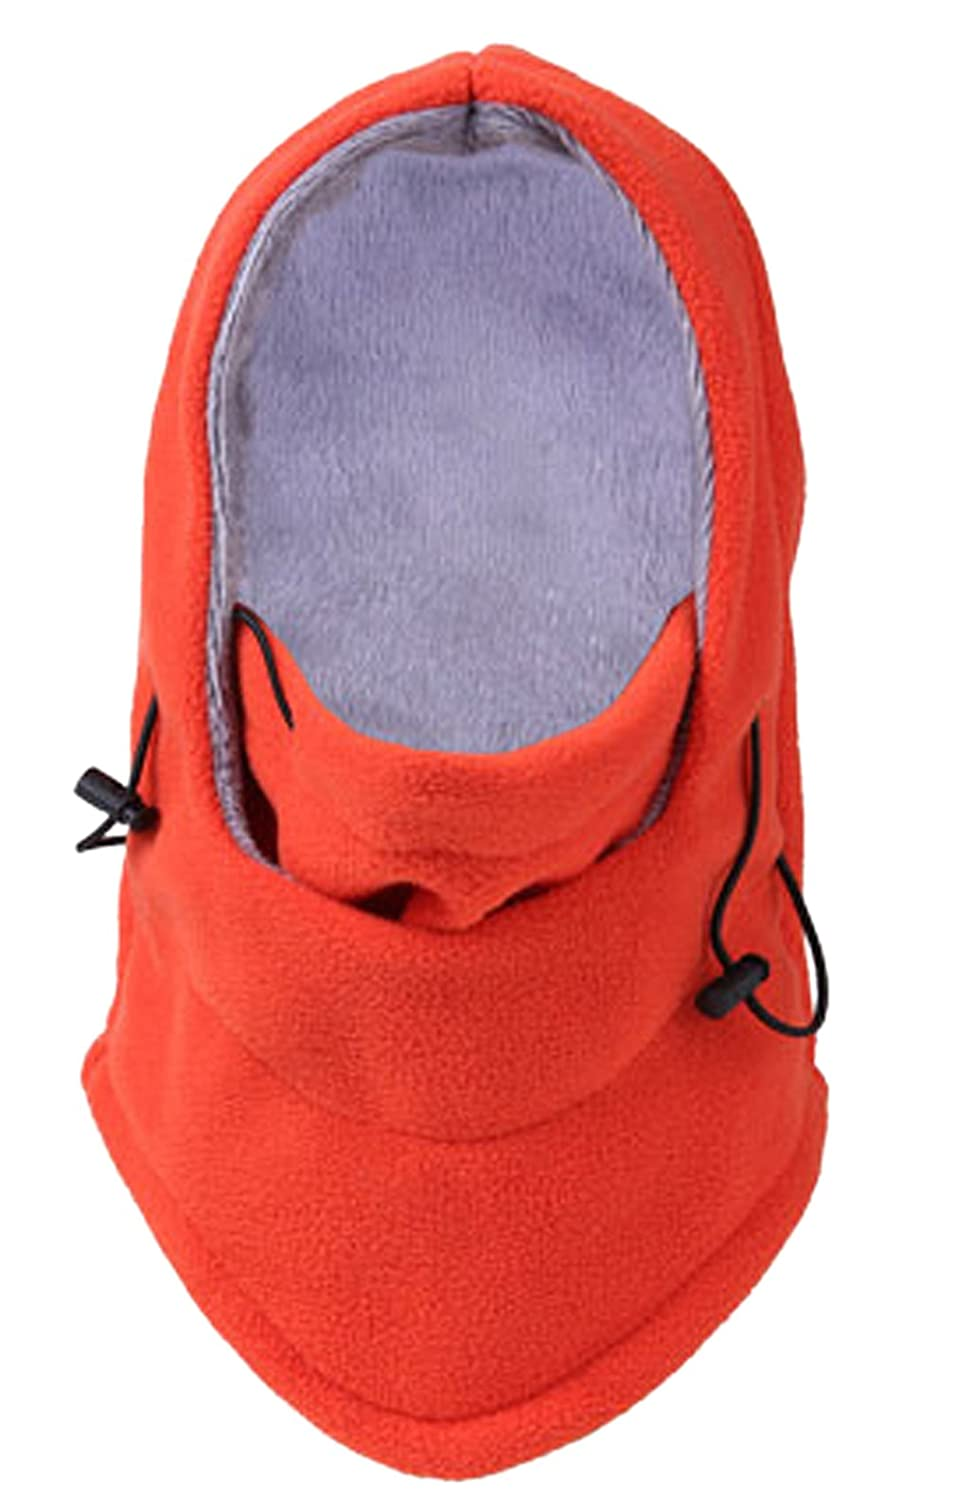 Lukis 6 in 1 Fleece Balaclava Skimaske Sturmhaube Windmaske Orange